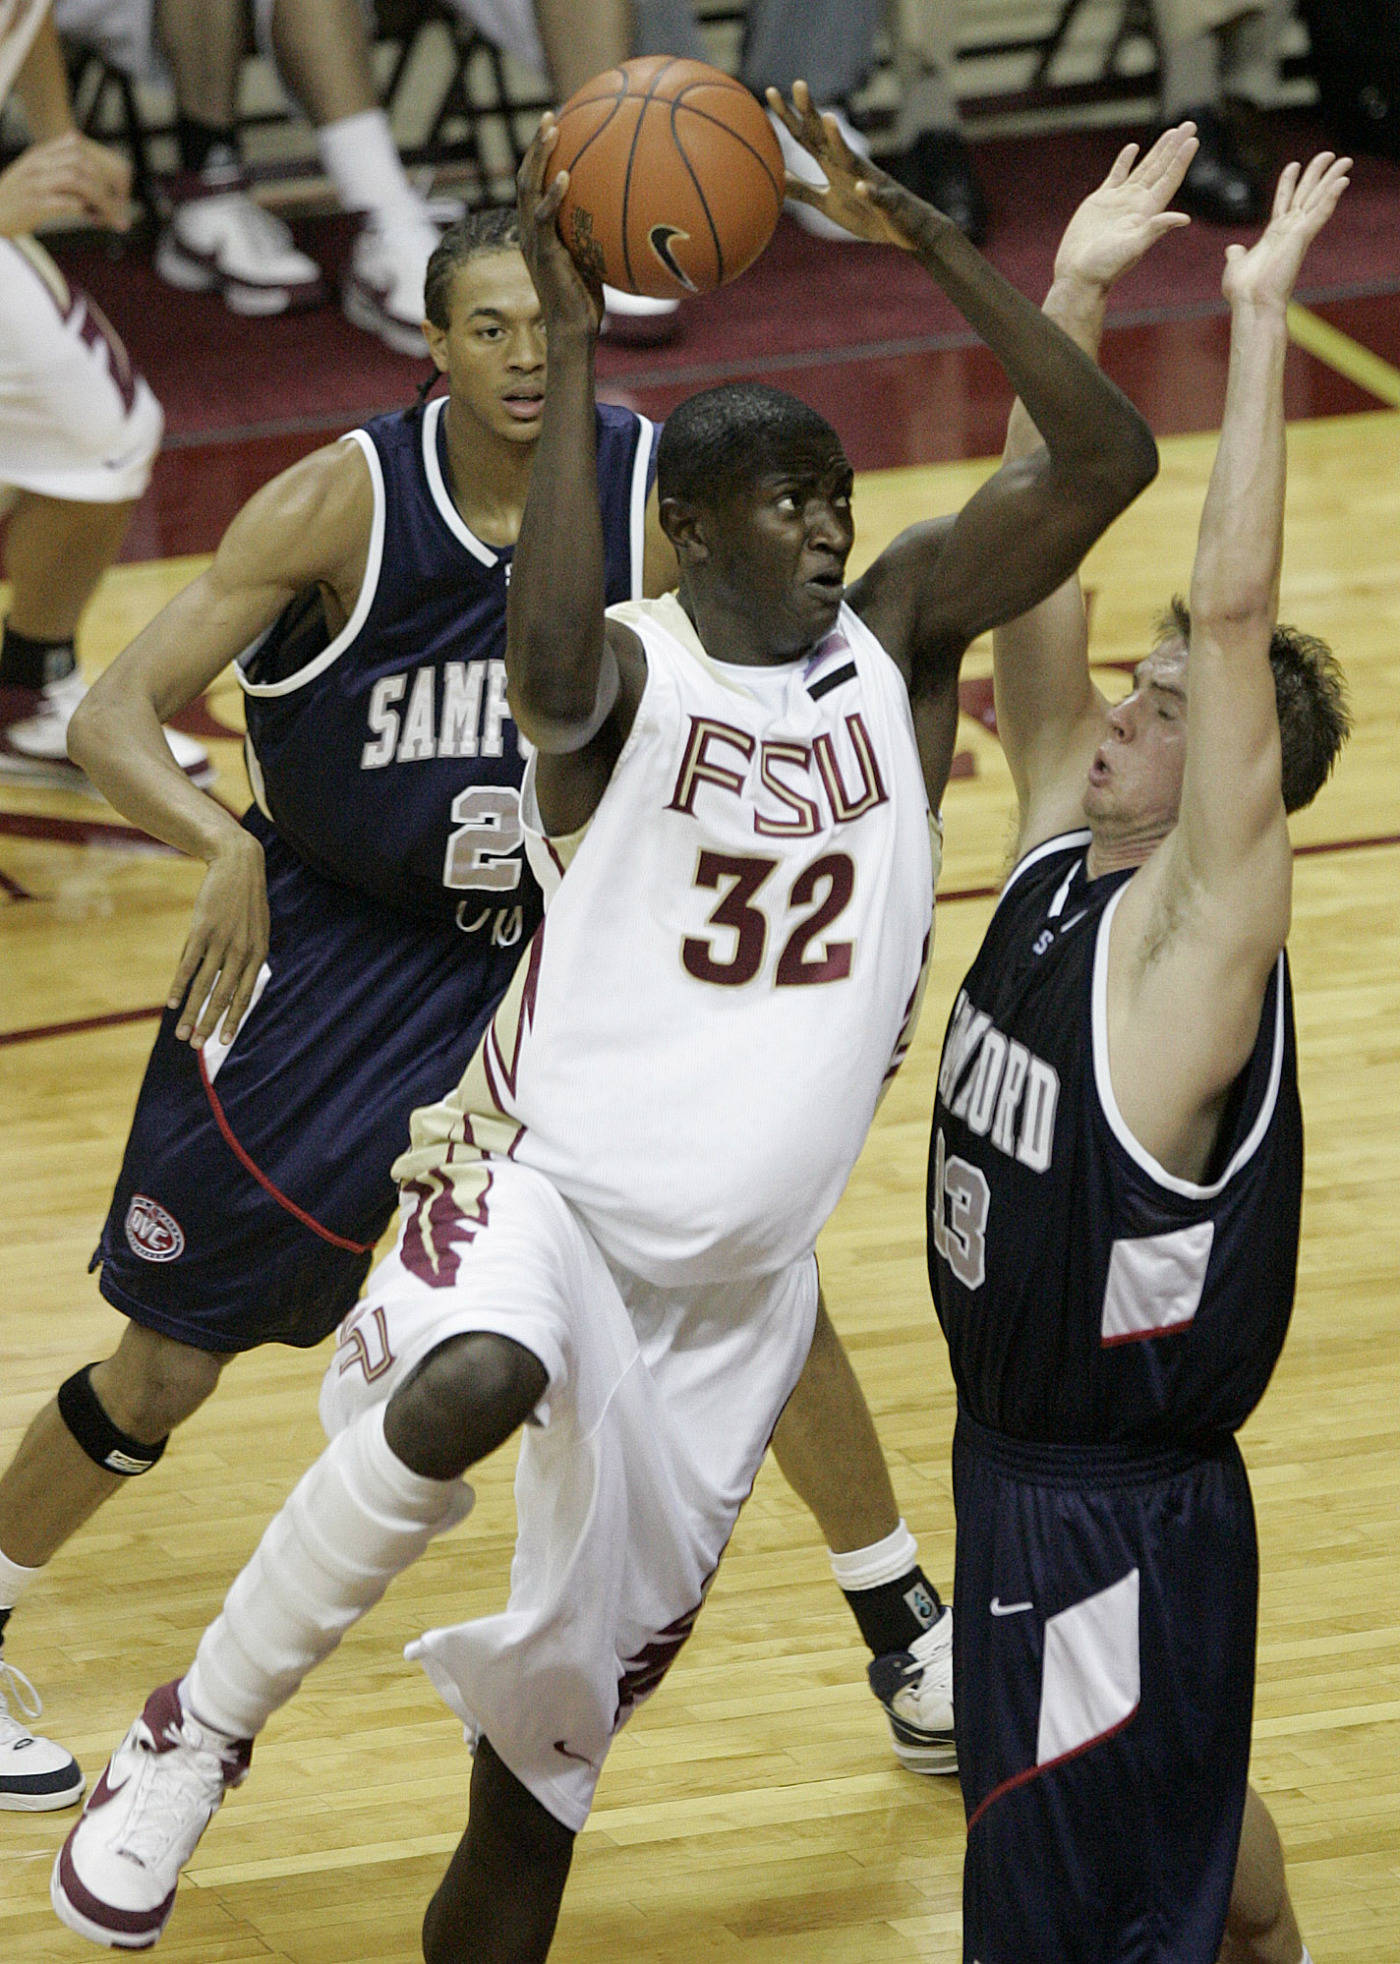 Florida State's Solomon Alabi (32) drives against Samford's Bryan Friday in the second half of a college basketball game which FSU won 61-45 on Sunday, Dec. 2, 2007, in Tallahassee, Fla. (AP Photo/Steve Cannon)